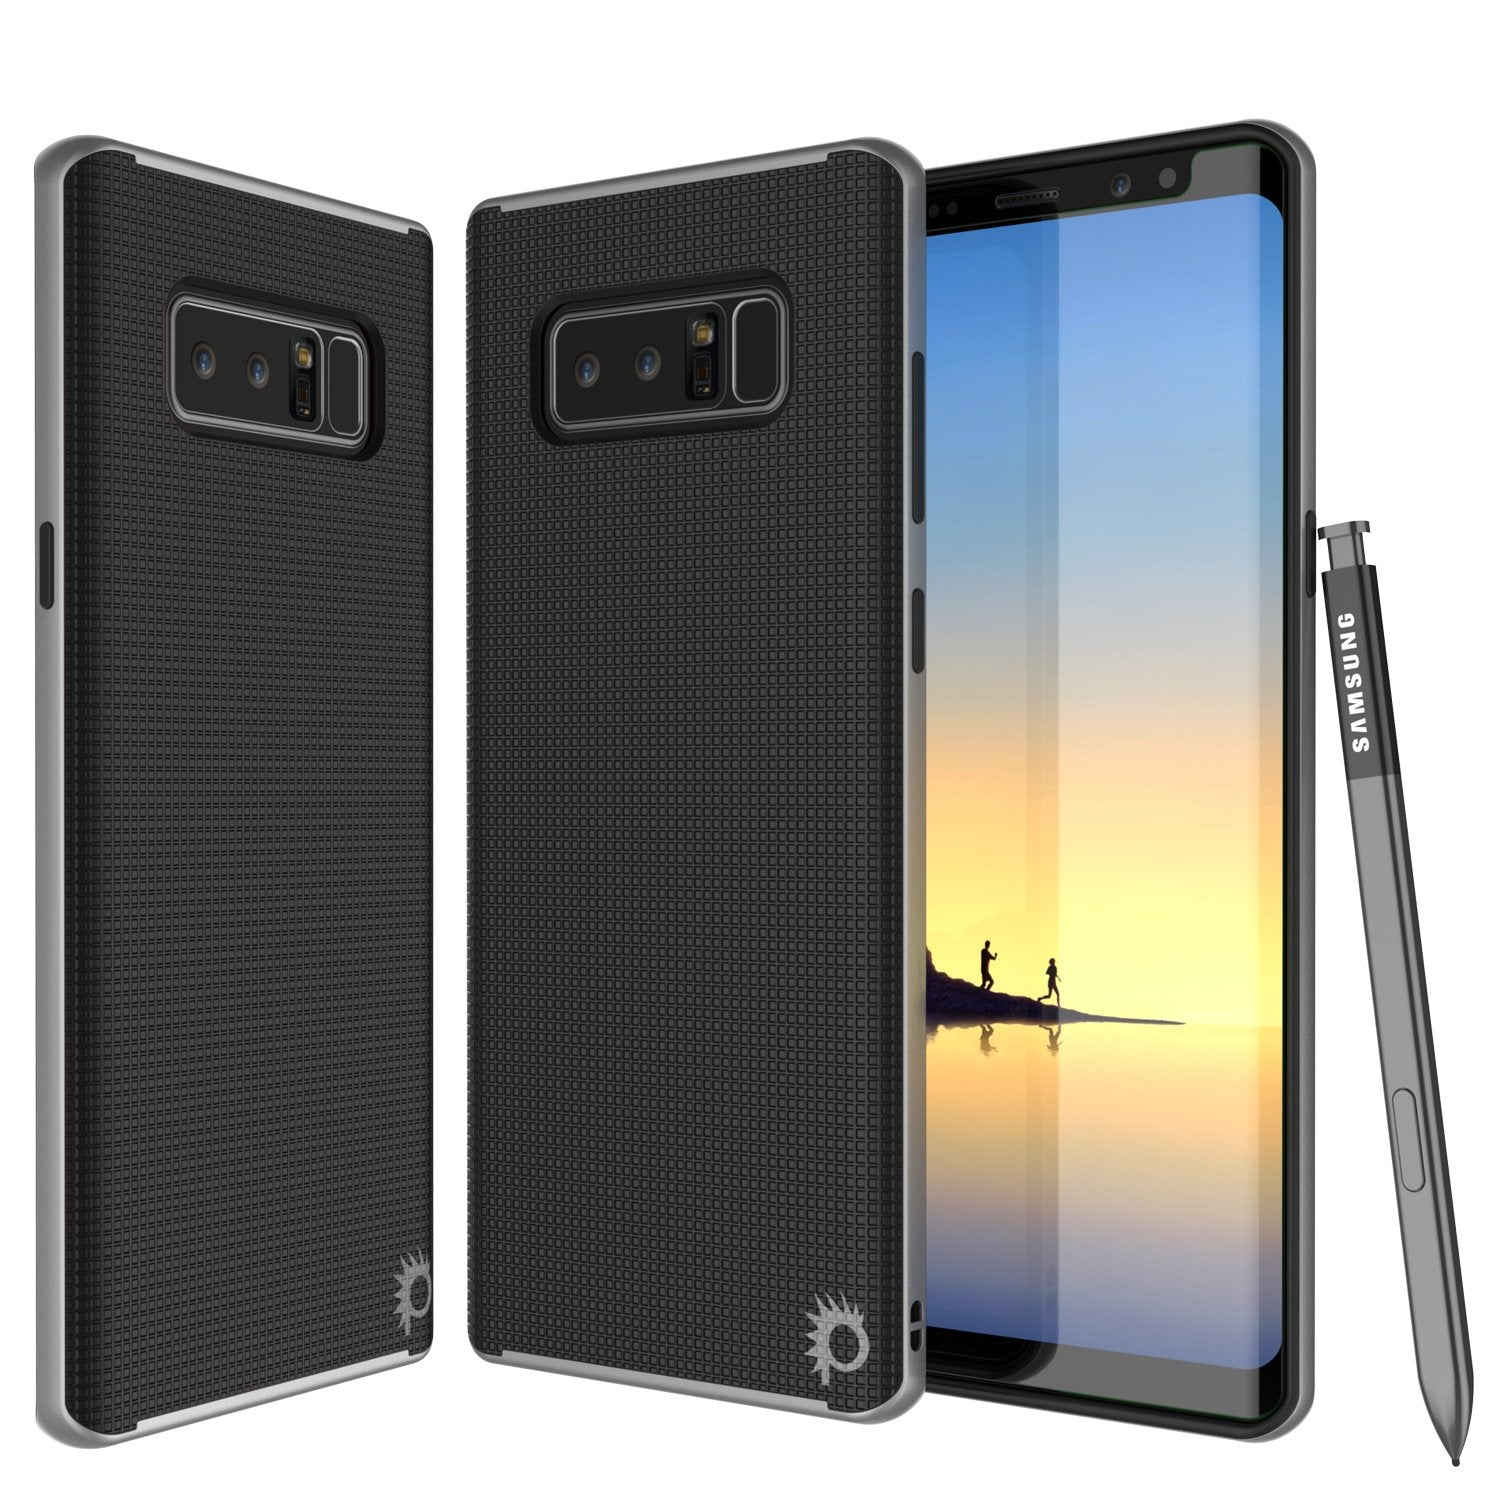 Galaxy Note 8 Case, PunkCase [Stealth Series] Hybrid 3-Piece Shockproof Dual Layer Cover [Non-Slip] [Soft TPU + PC Bumper] with PUNKSHIELD Screen Protector for Samsung Note 8 [Silver]